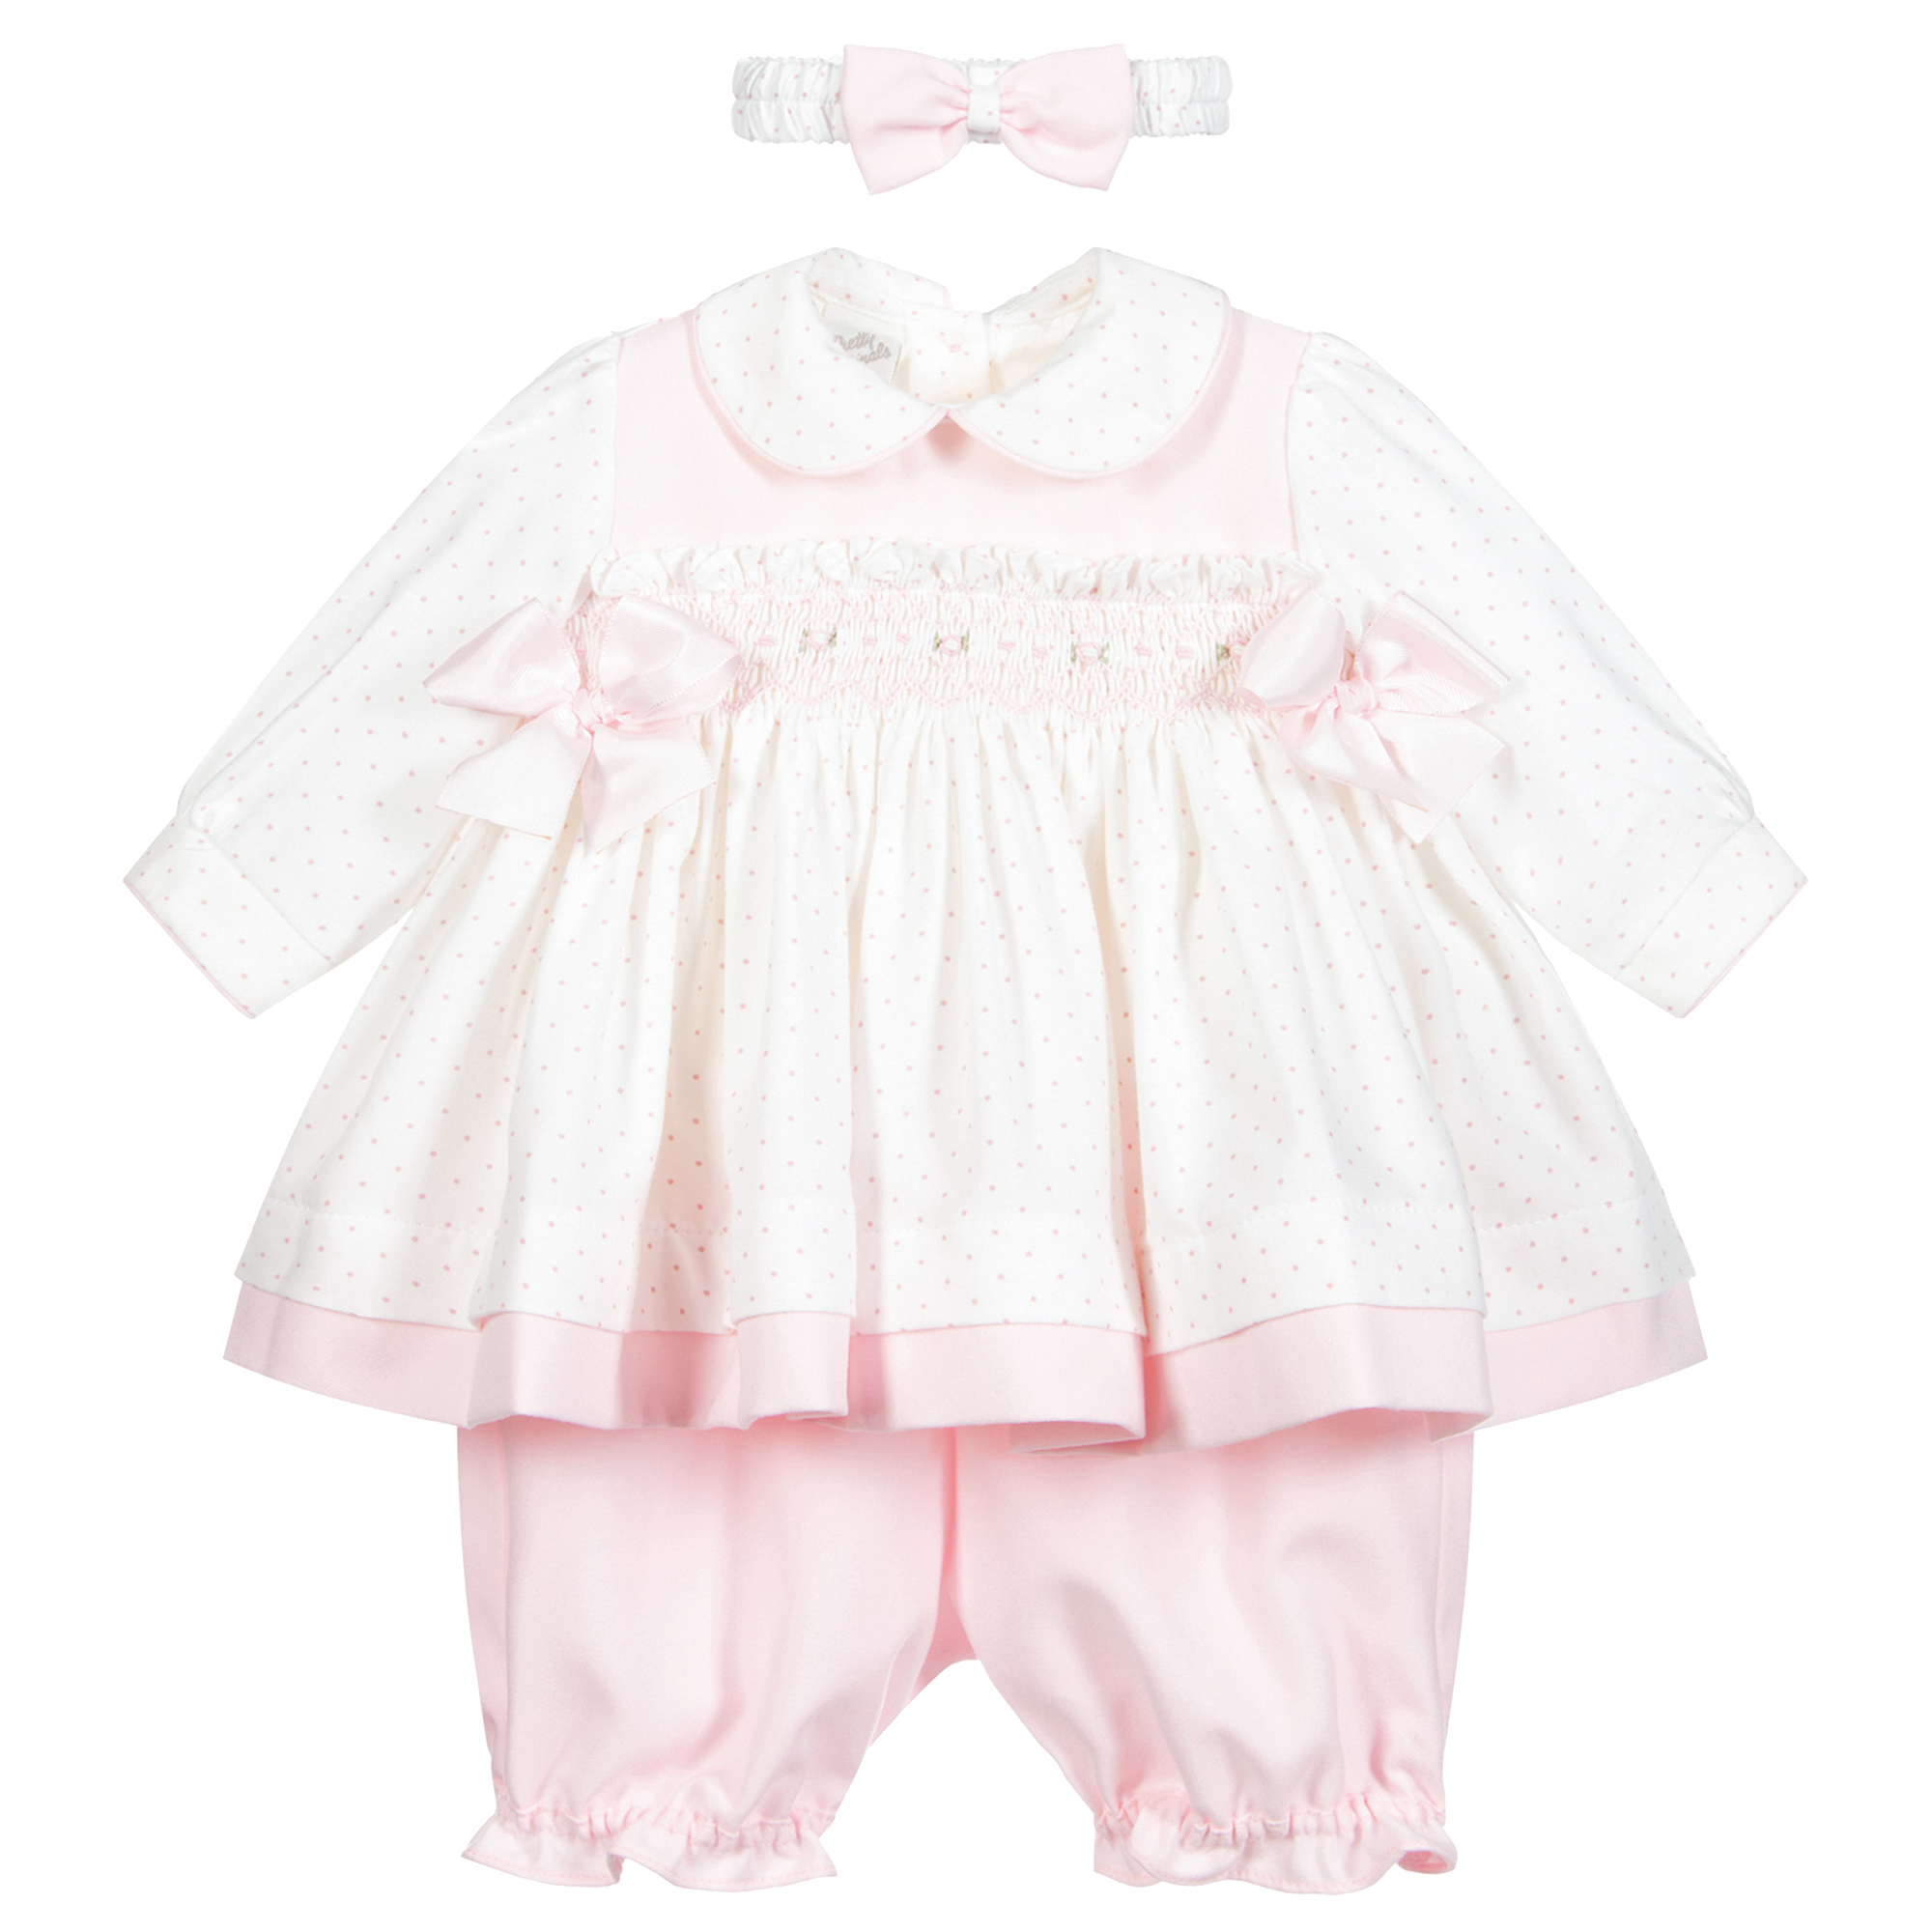 Pretty Originals Baby Girls Pink /& White Set 4 Sizes Brand New With Tags